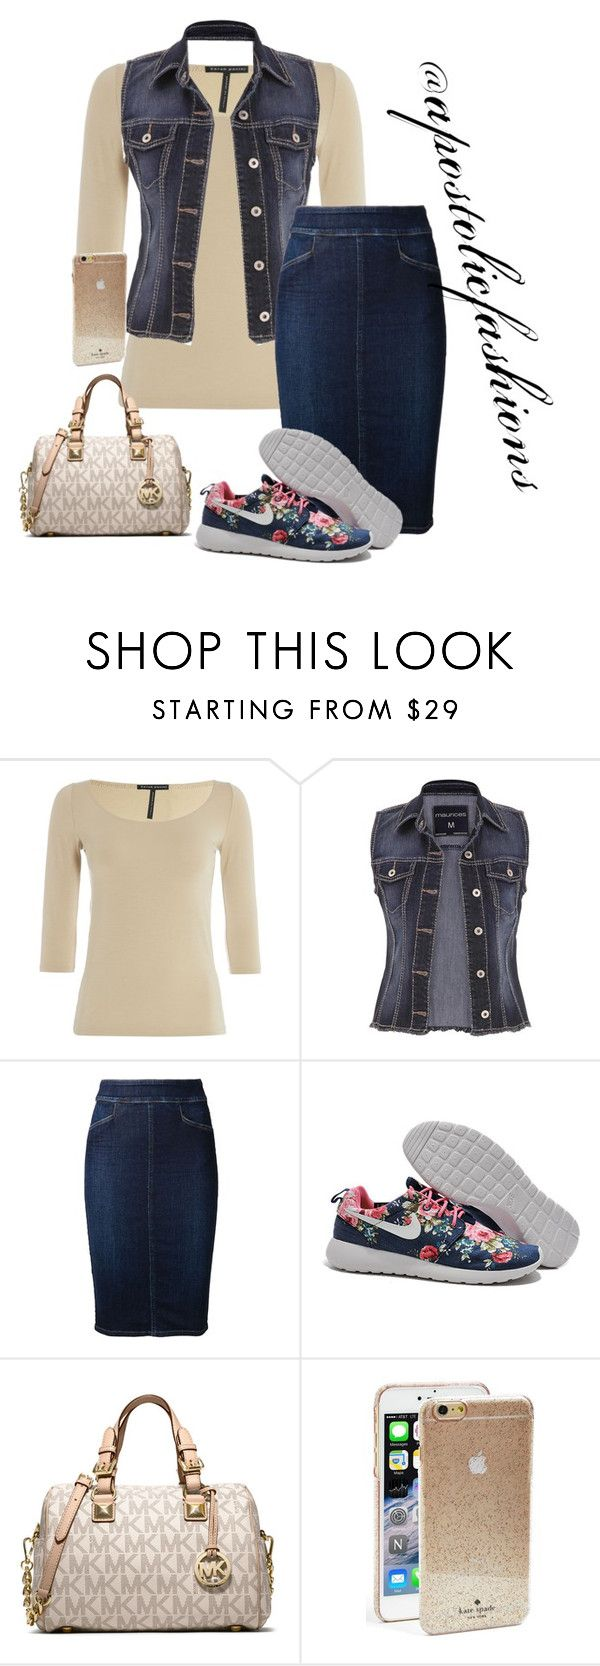 """""""Apostolic Fashions #1419"""" by apostolicfashions on Polyvore featuring Sarah Pacini, maurices, Citizens of Humanity, MICHAEL Michael Kors and Kate Spade"""